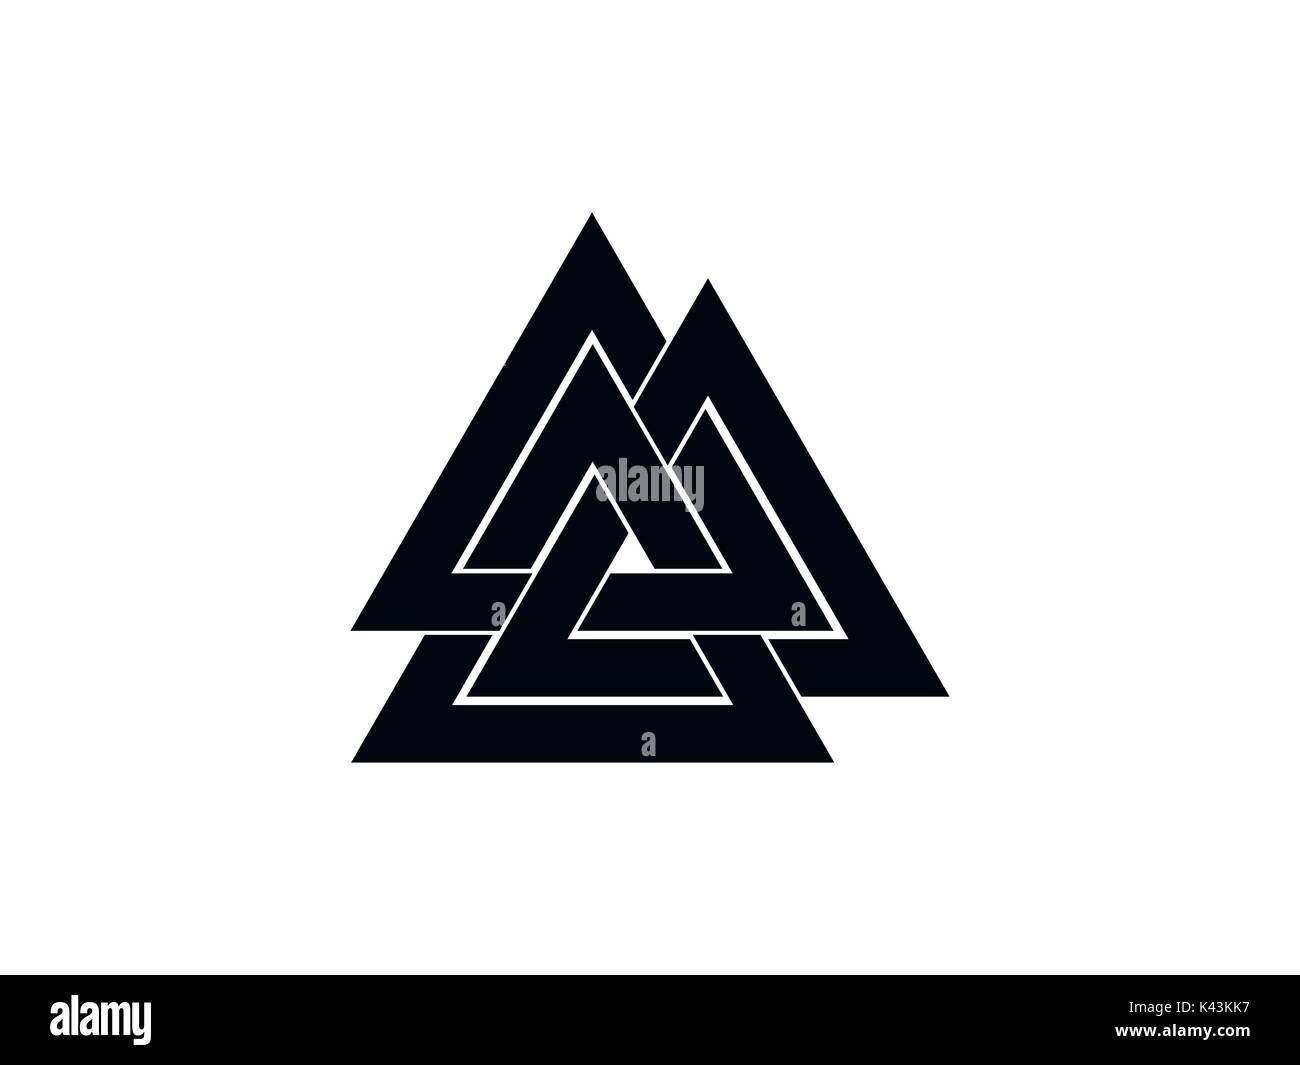 Valknut is a symbol of the world's end of the tree Yggdrasil. Sign of the god Odin. Norse culture. Triangle logo. Vector illustration - Stock Image